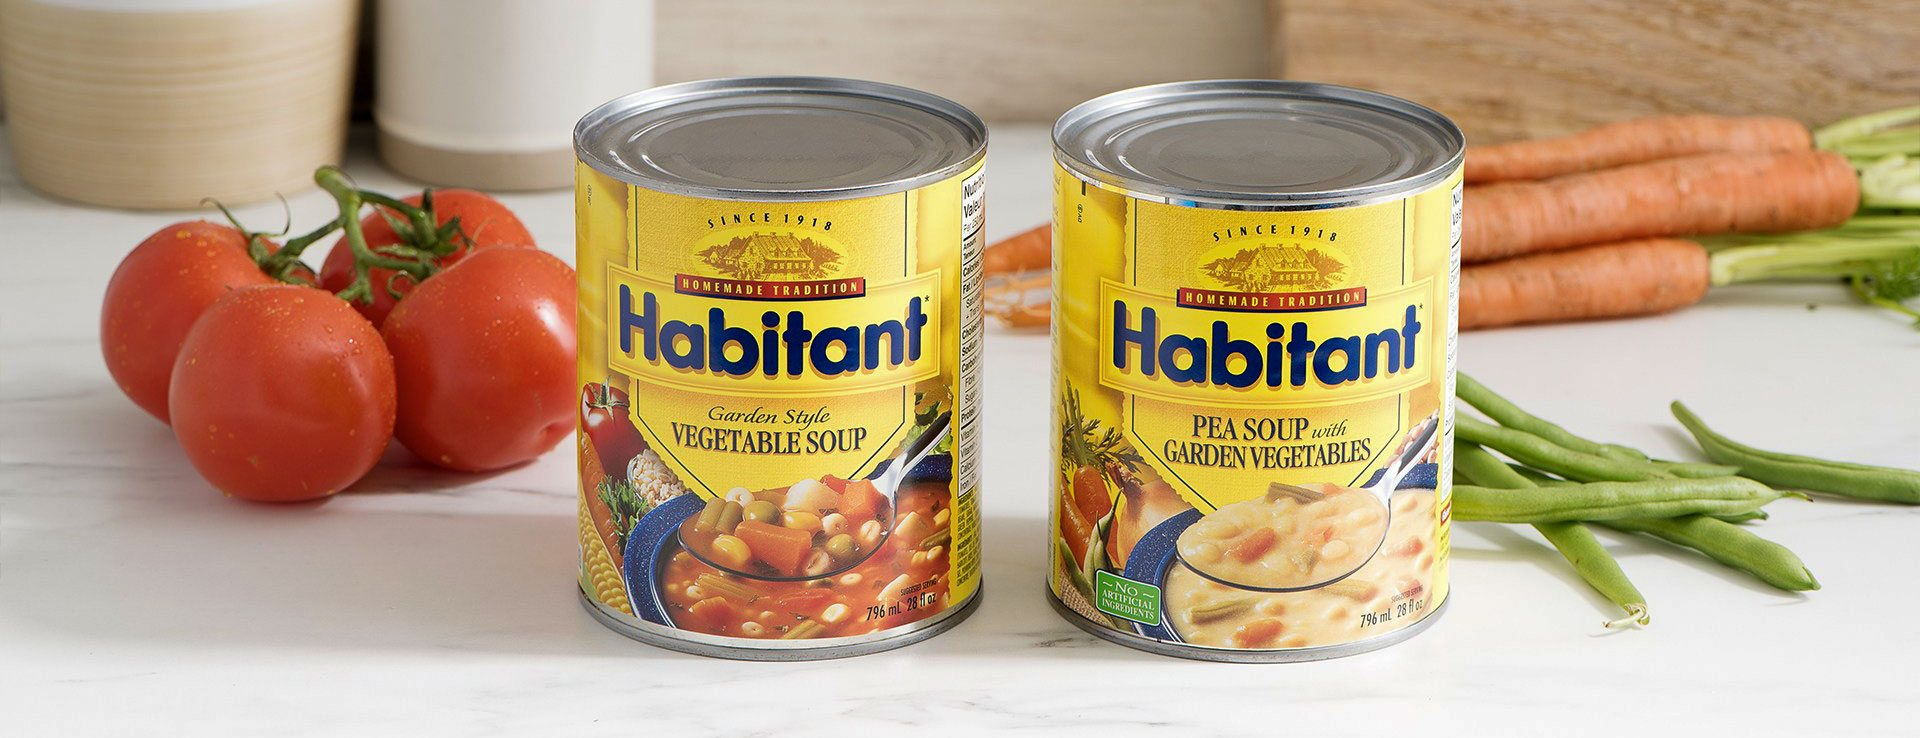 Habitant soup cans with tomatoes, pea shoots and carrots